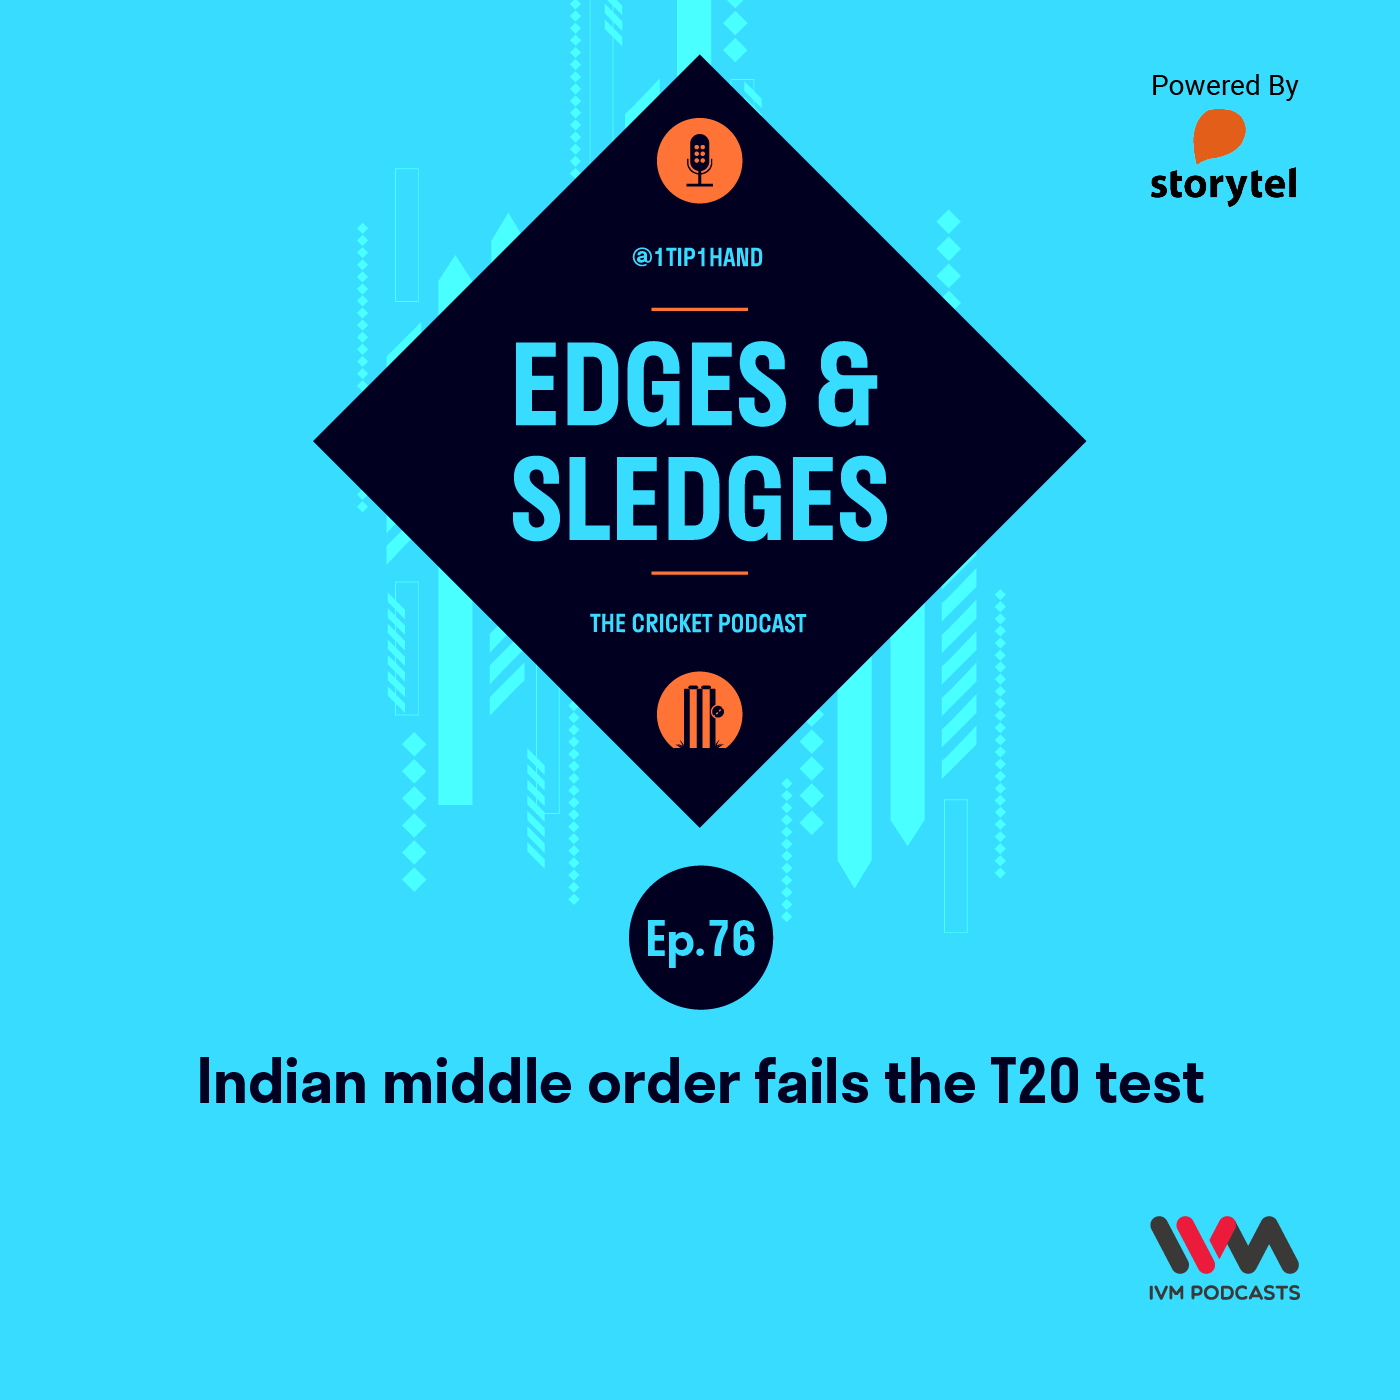 Ep. 76: Indian middle order fails the T20 test